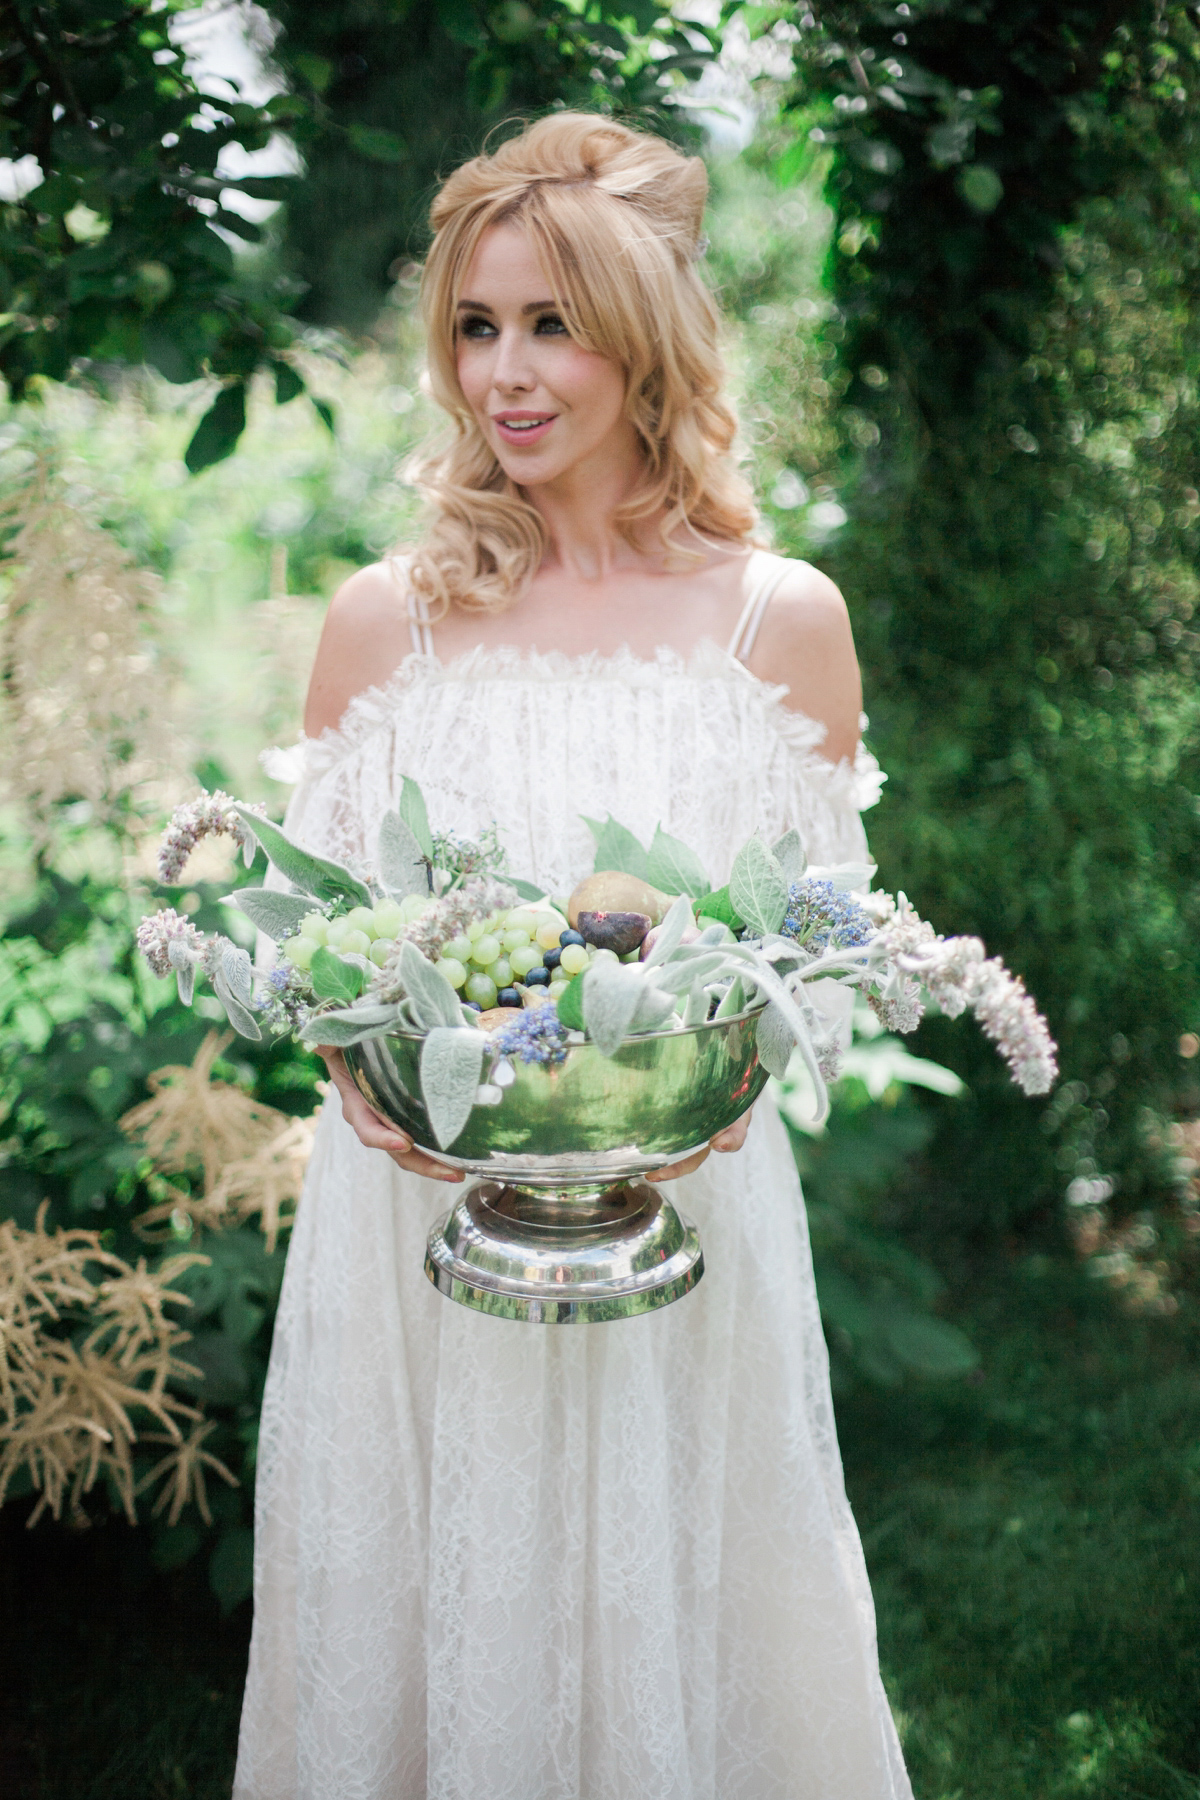 Bardot Inspired Bridal Inspiration (Get Inspired Styled Shoots )